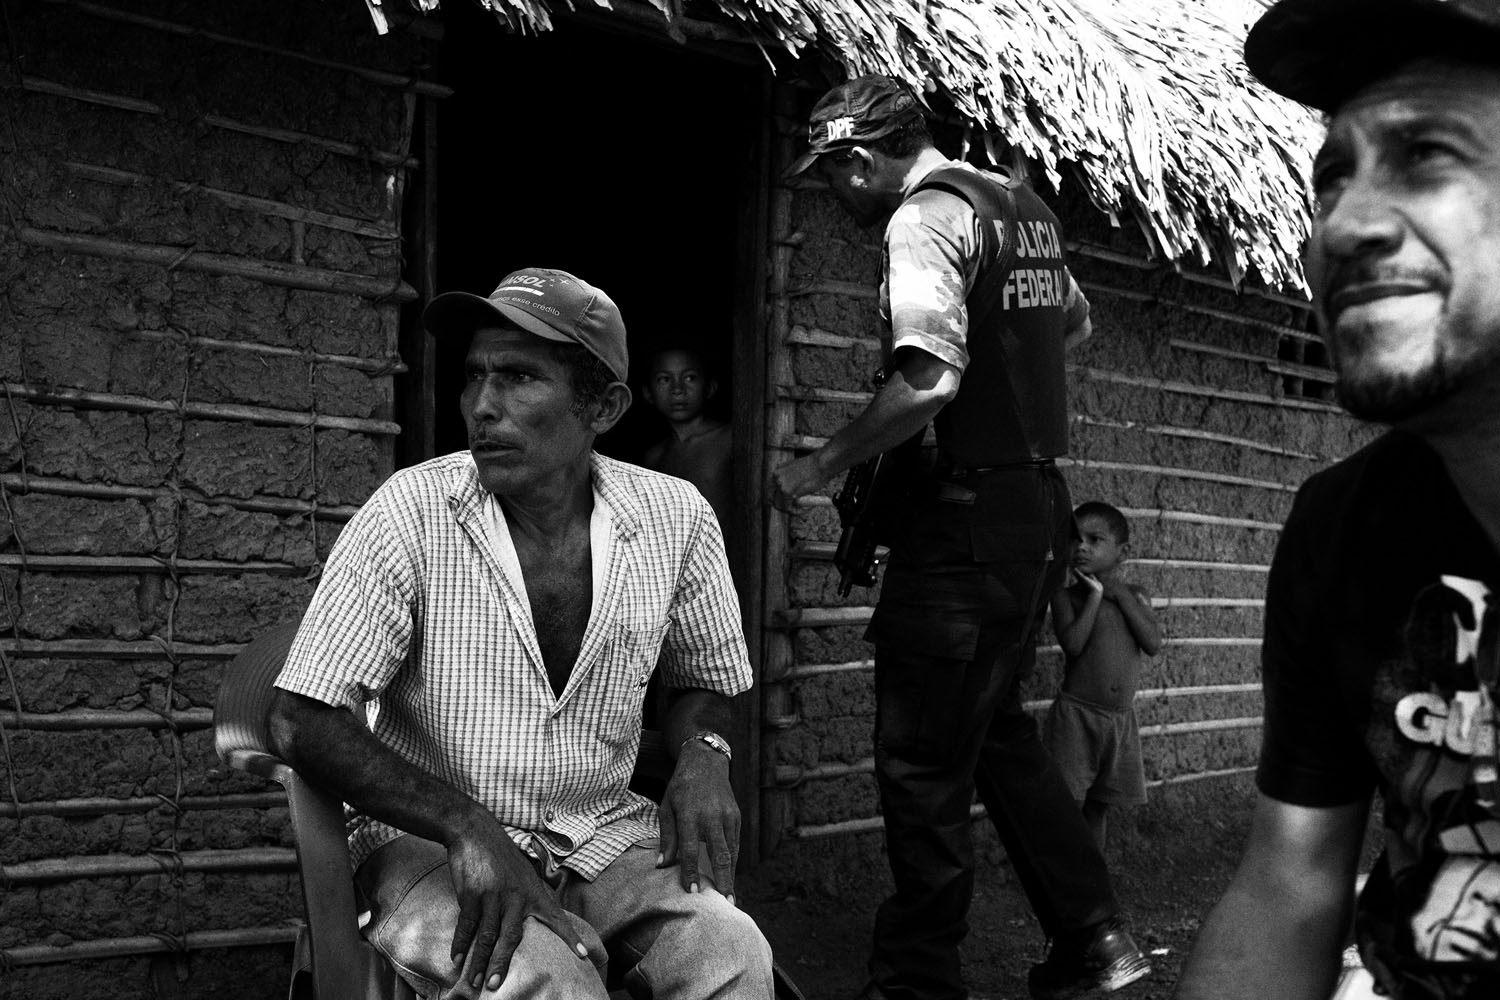 Members of the special operation to free slave workers in the State of Maranhao talk with Rogerio. He and his family have been working for 13 years on the  fazenda  (farm) and have received no payment. Their  debt  and death threats prevent them from leaving. March 10, 2012.